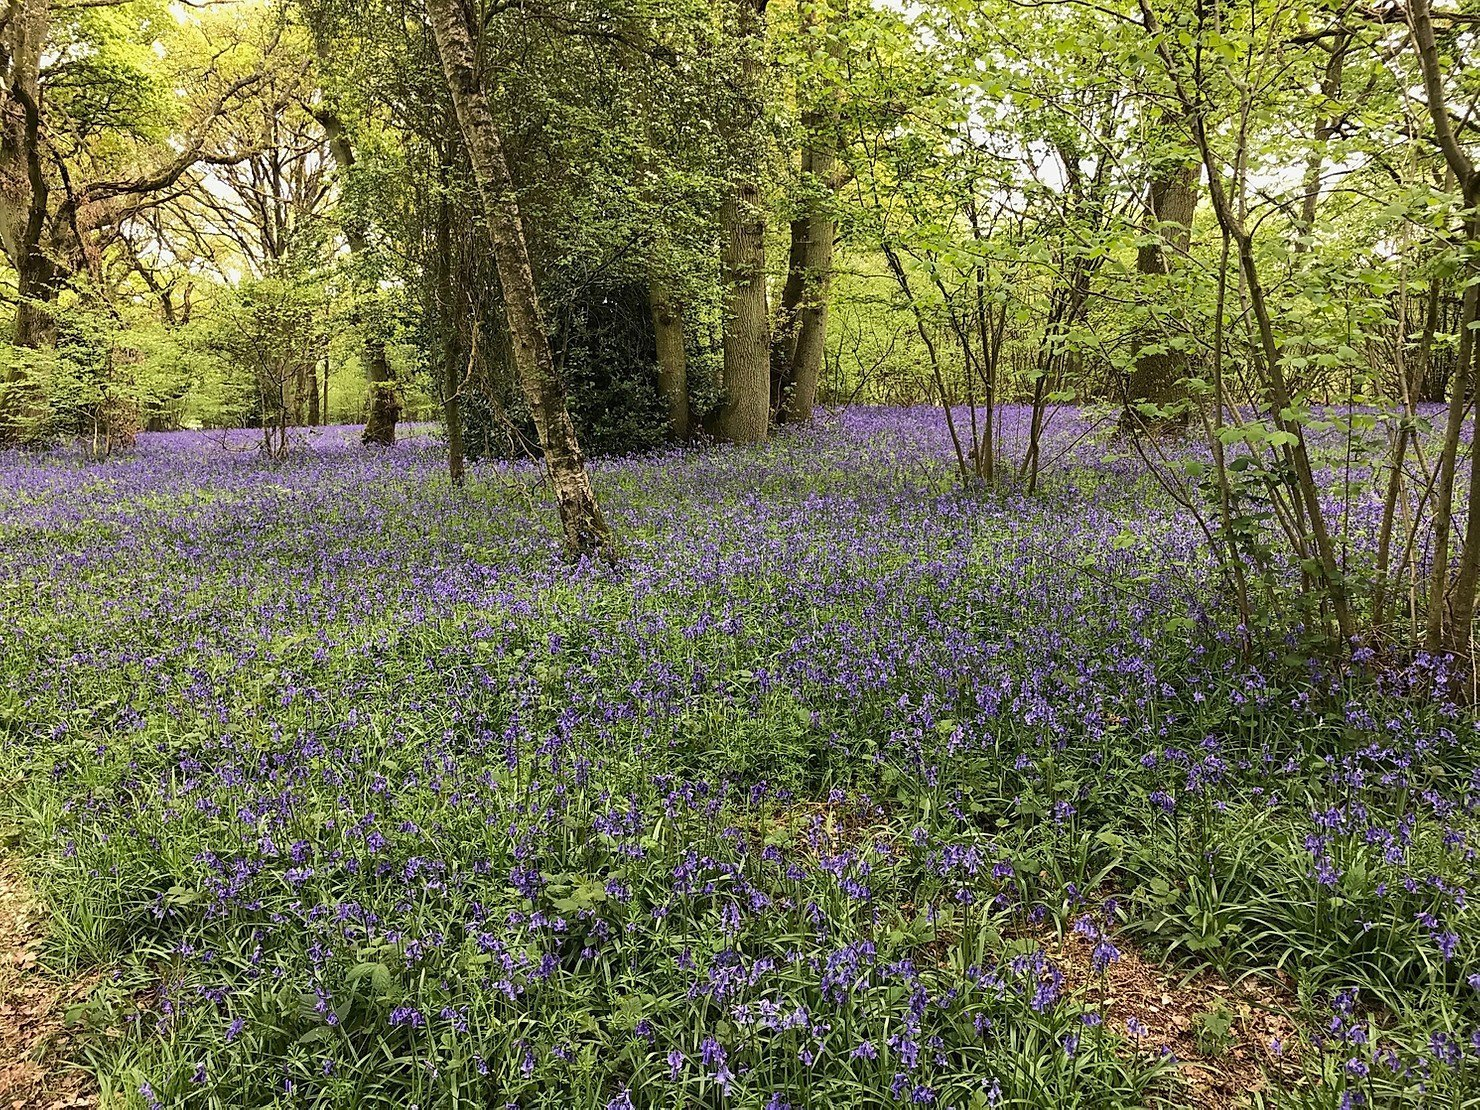 2019 Bluebells in Berkshire and the surrounding area